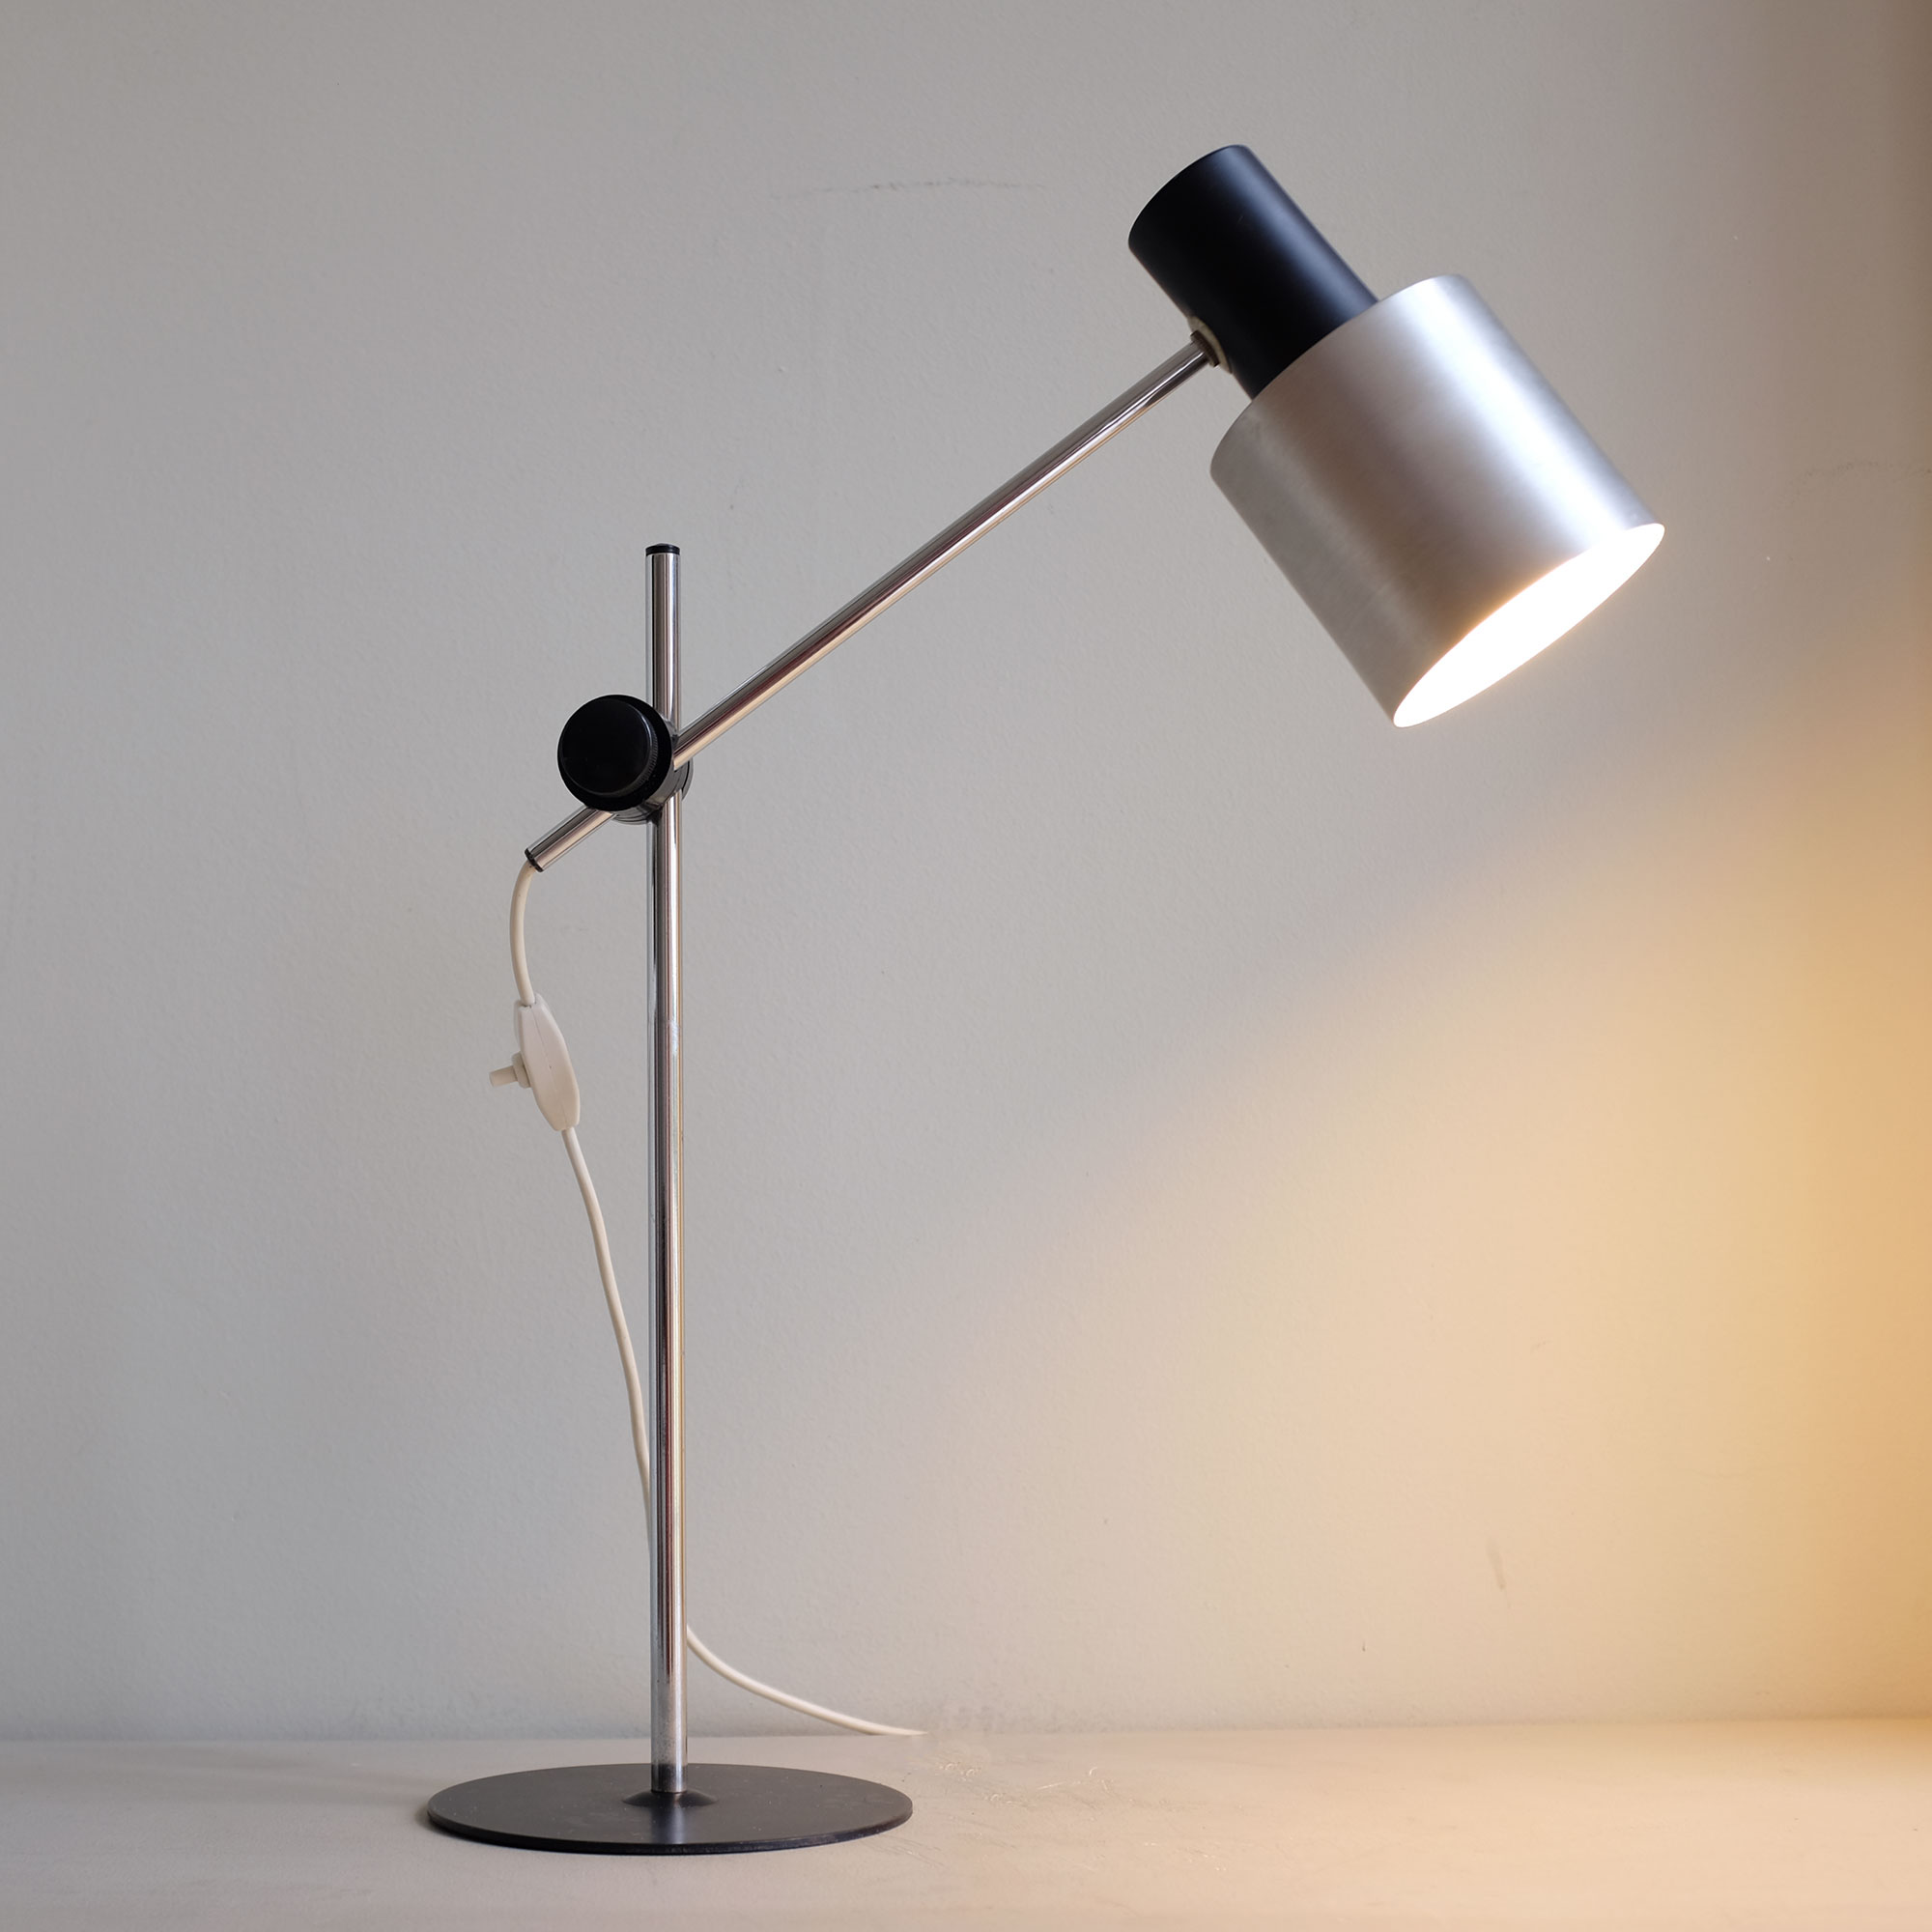 Vintage-Italian-Desk-Lamp-by-Prova-v